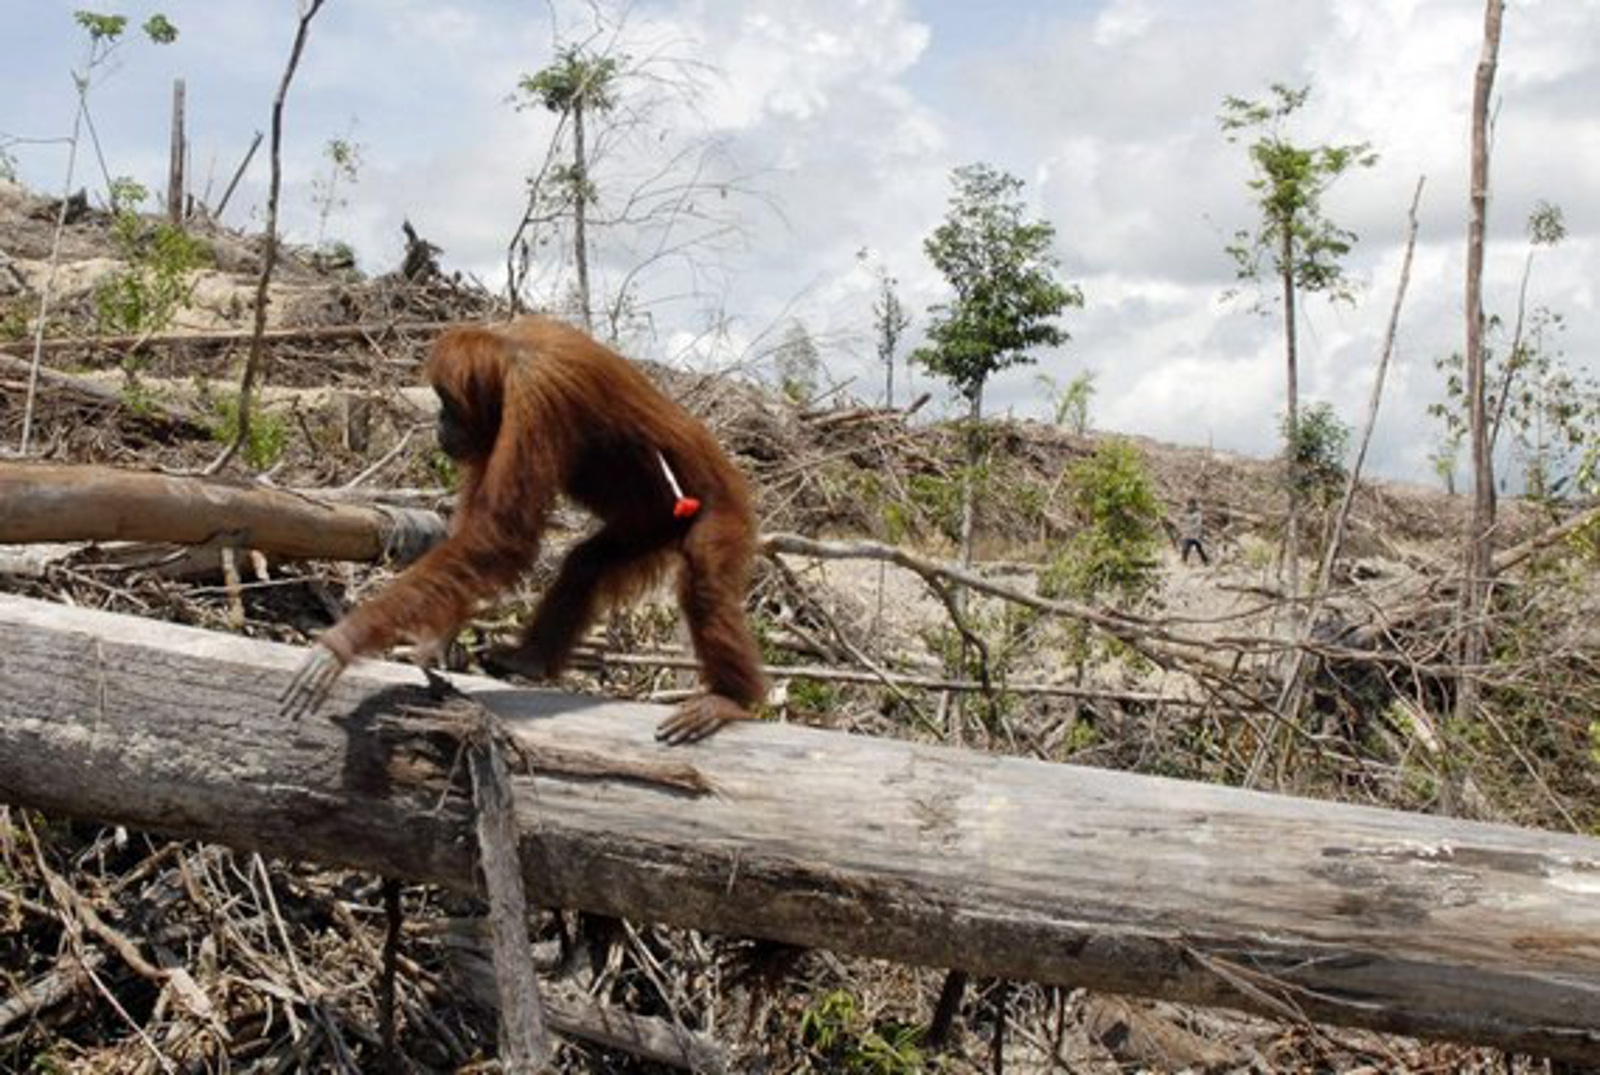 This Heartbreaking Image Reveals What Deforestation Really Looks Like